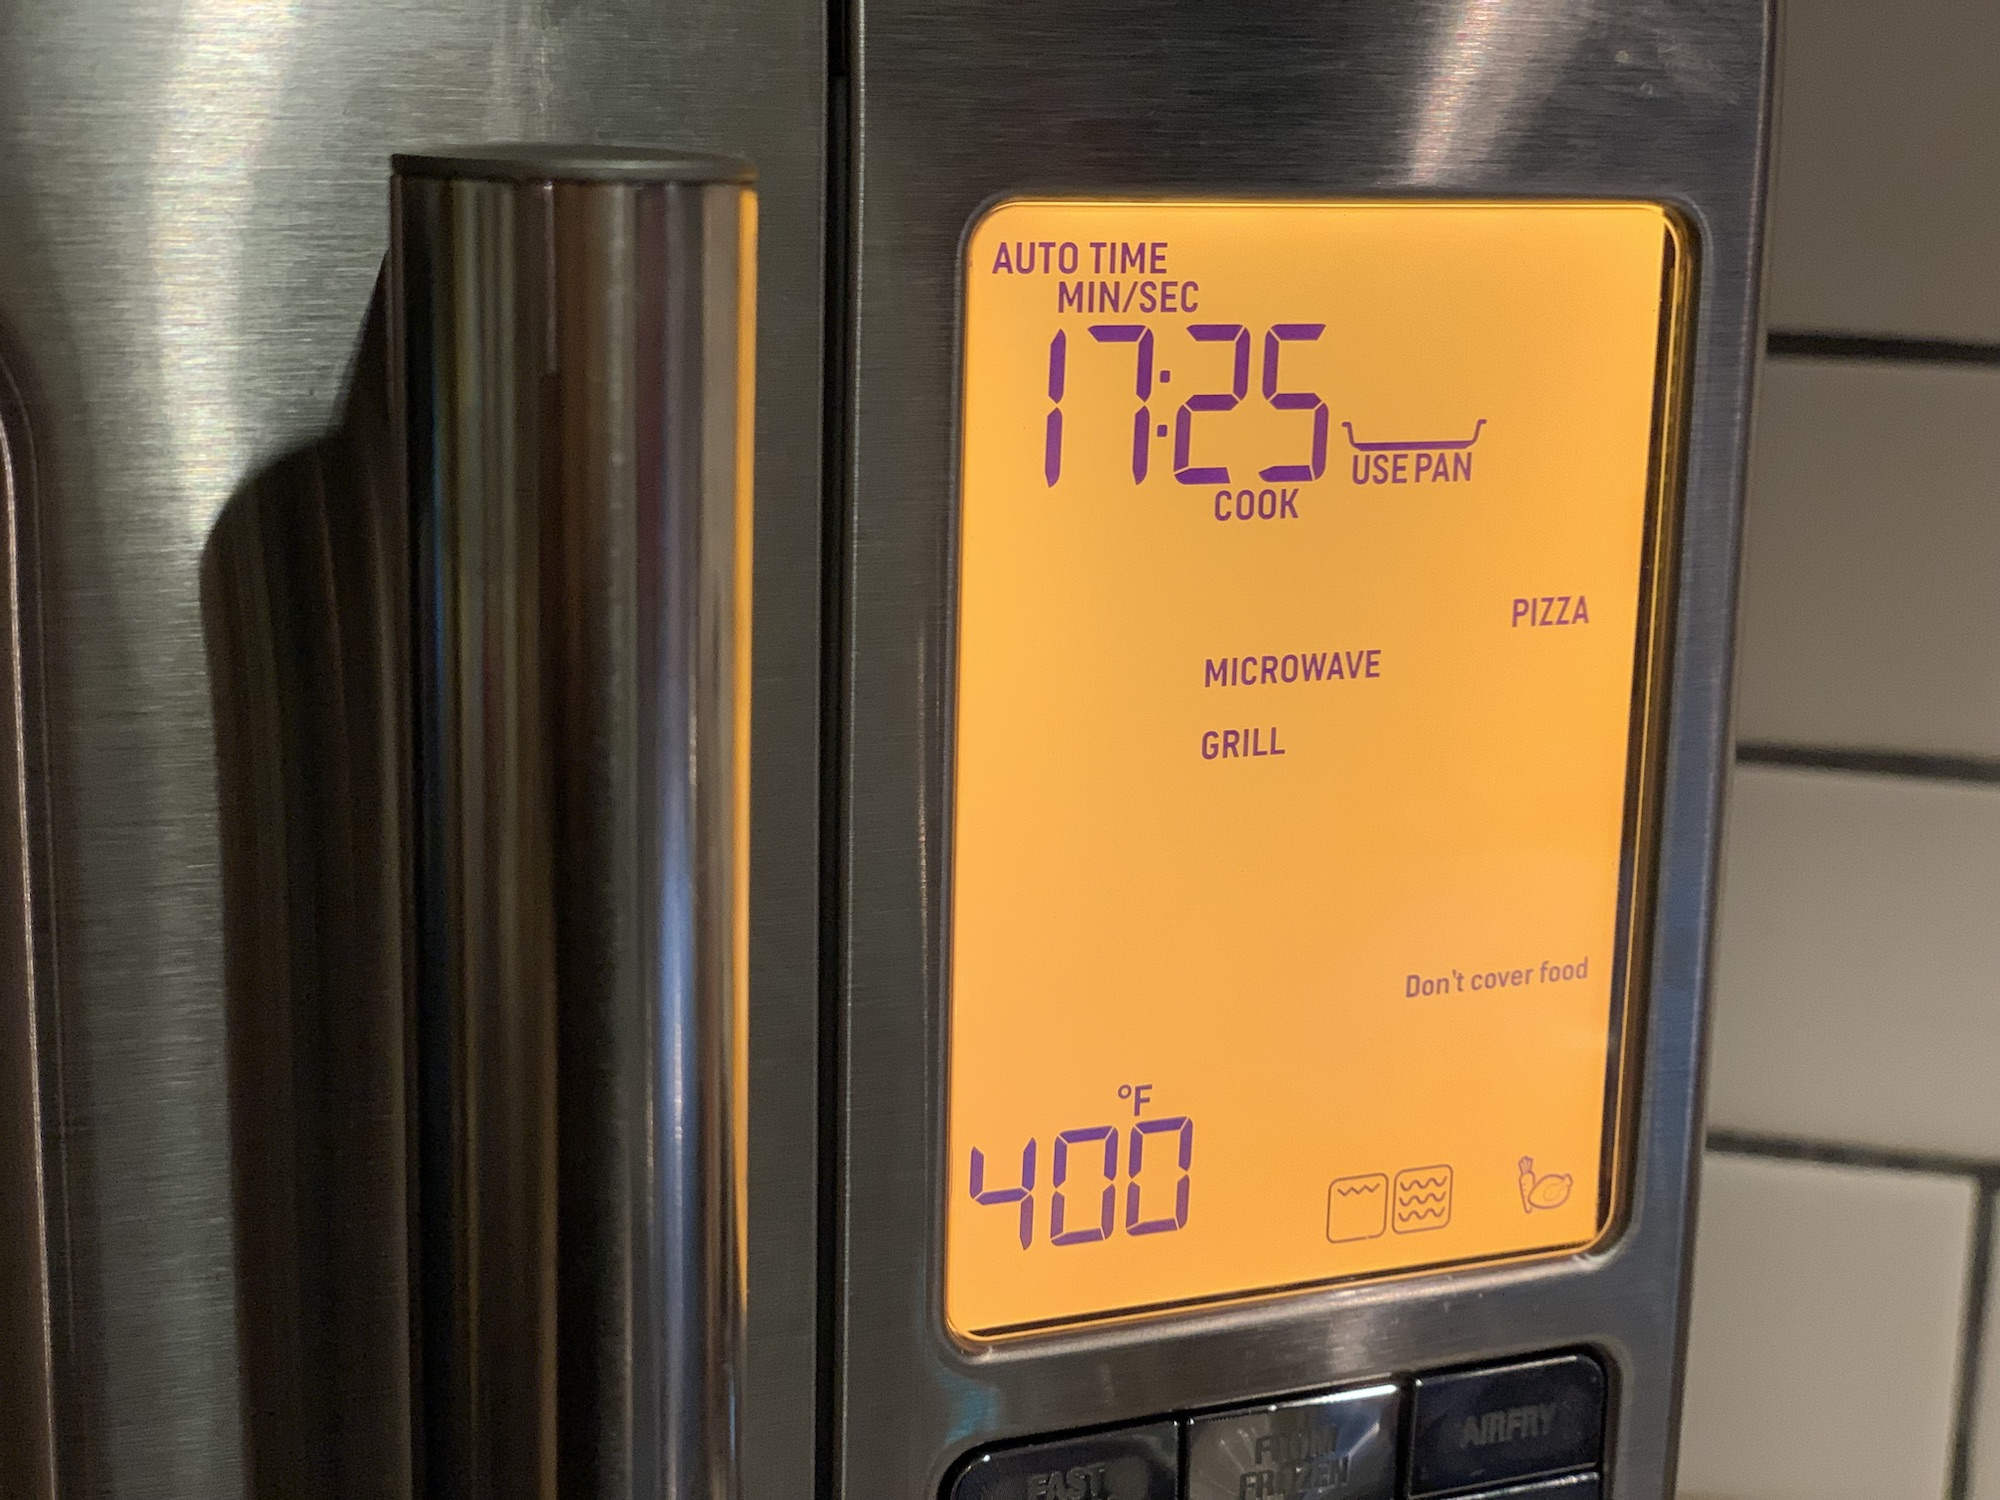 Breville 3-in-1 convection and microwave